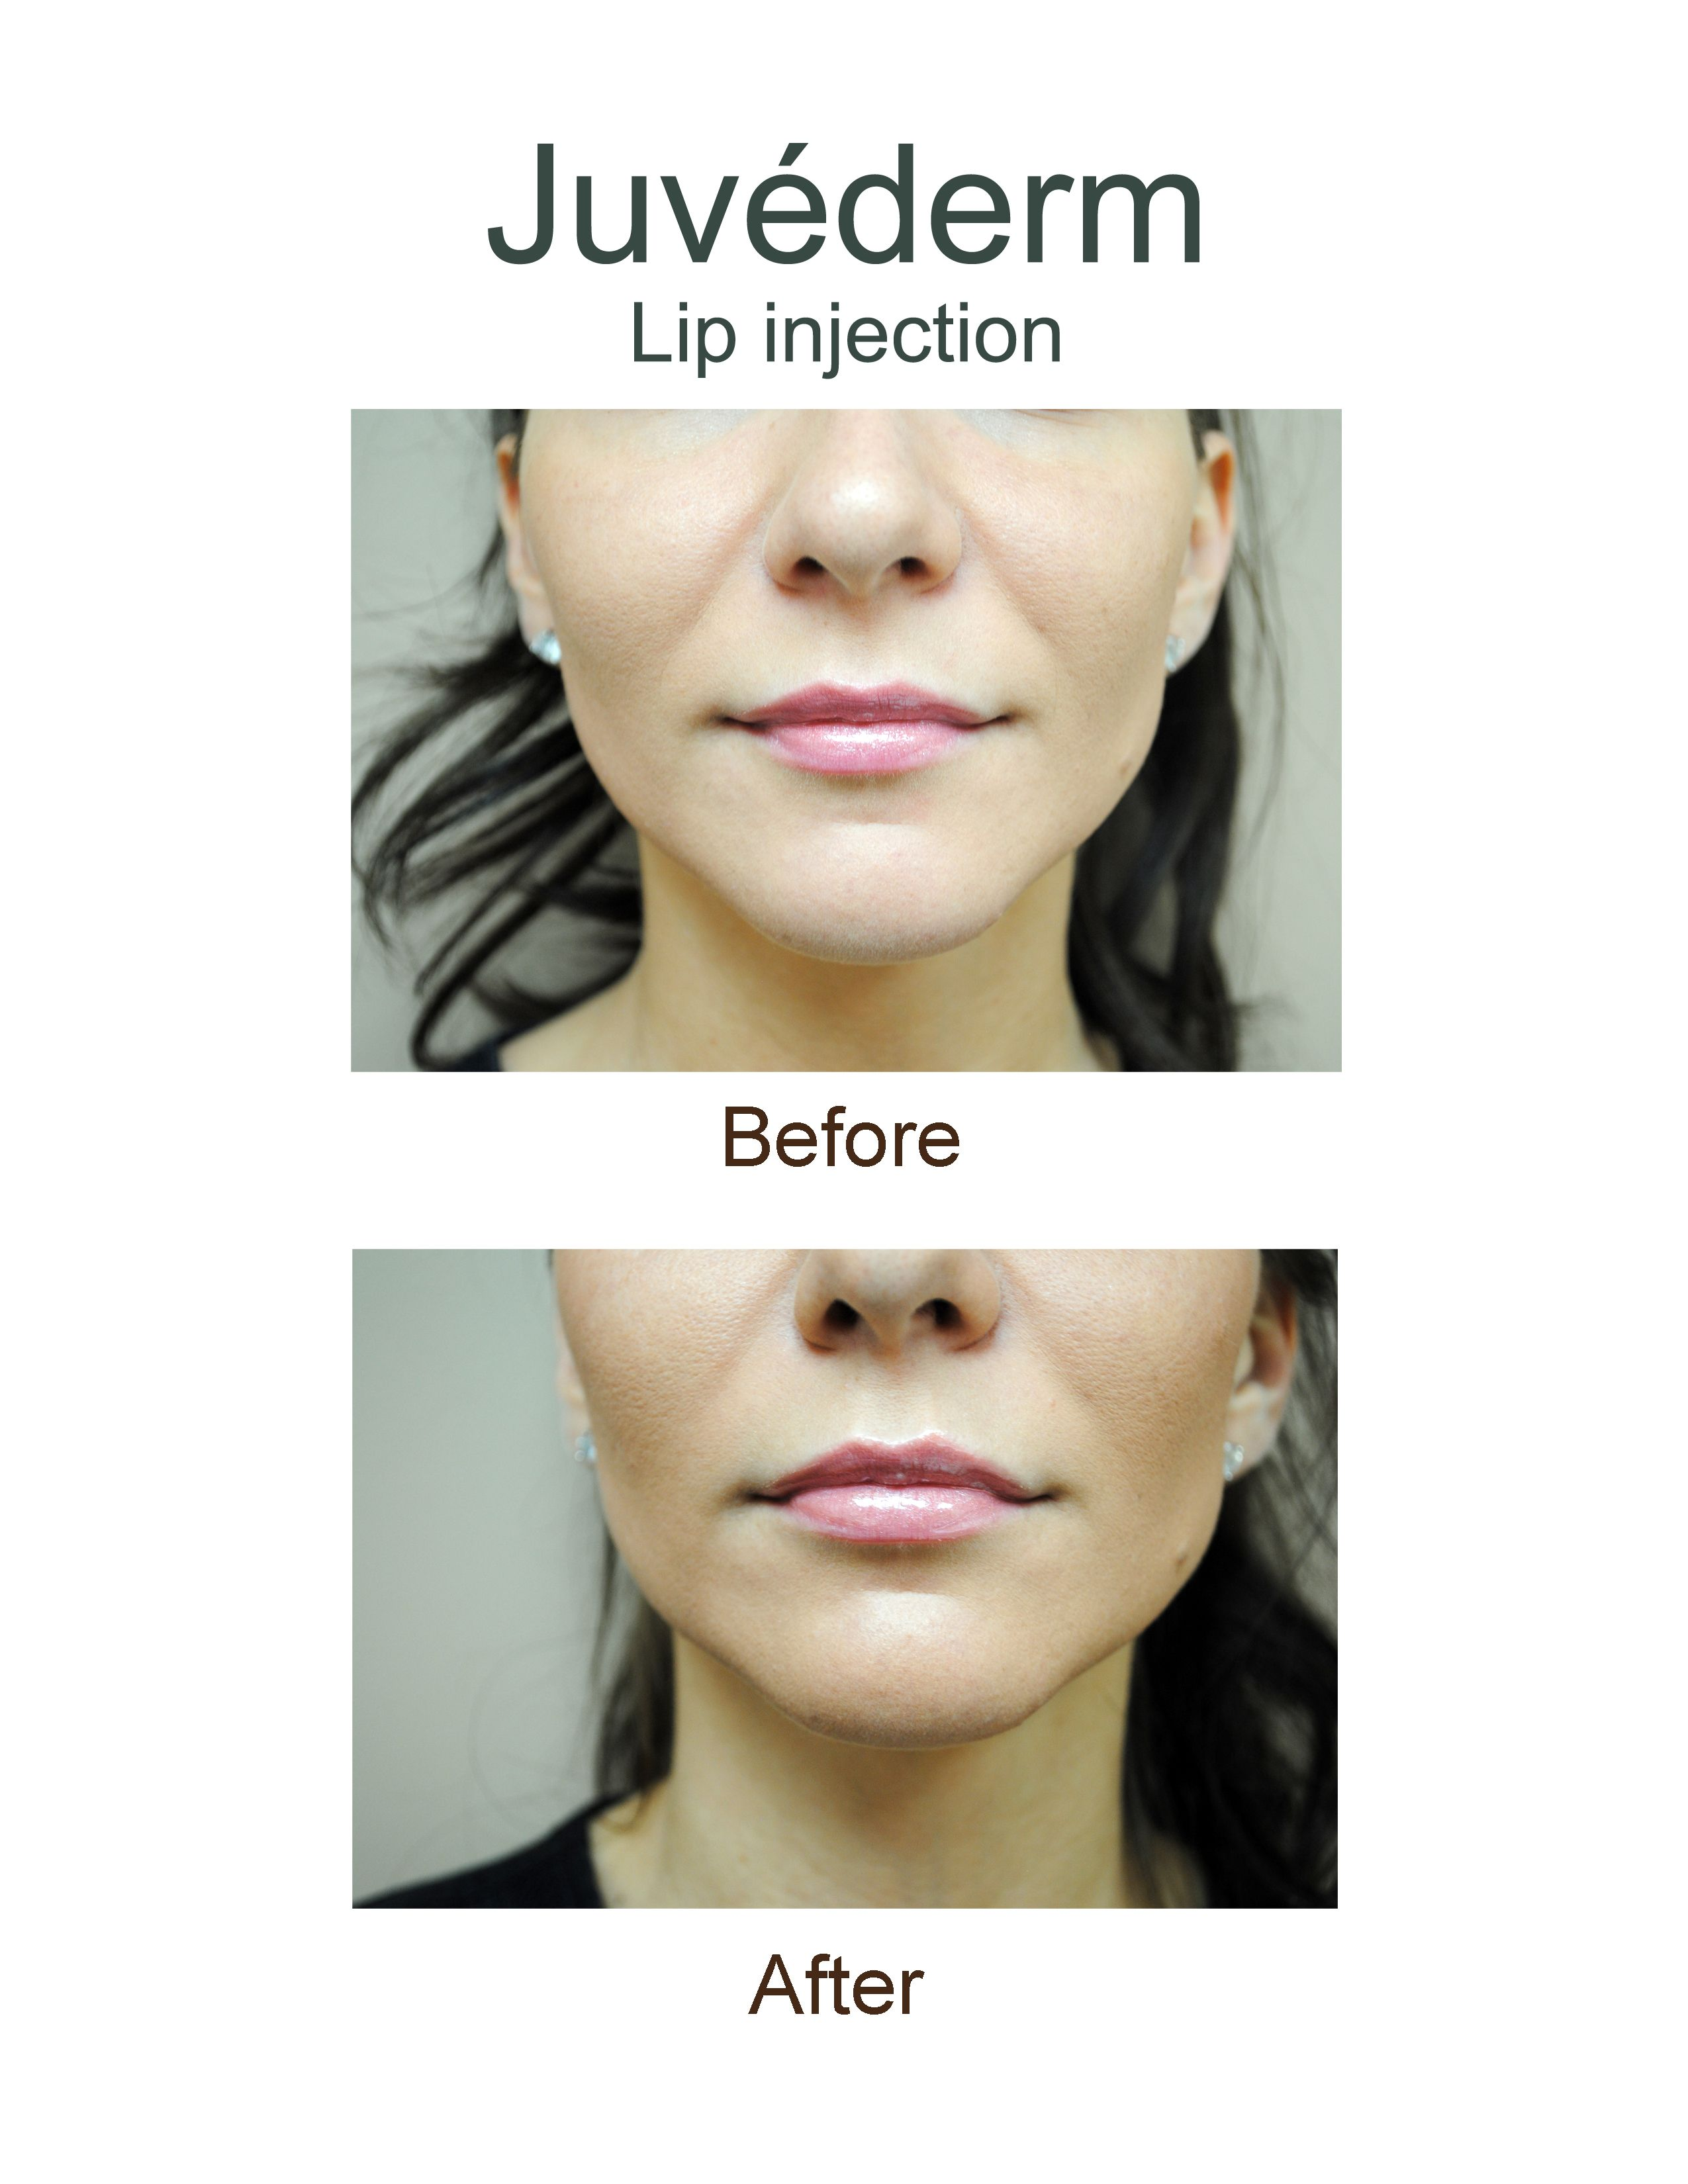 Juvaderm Dermal Fillers | Lip injections, Juvederm lips, Lip ...